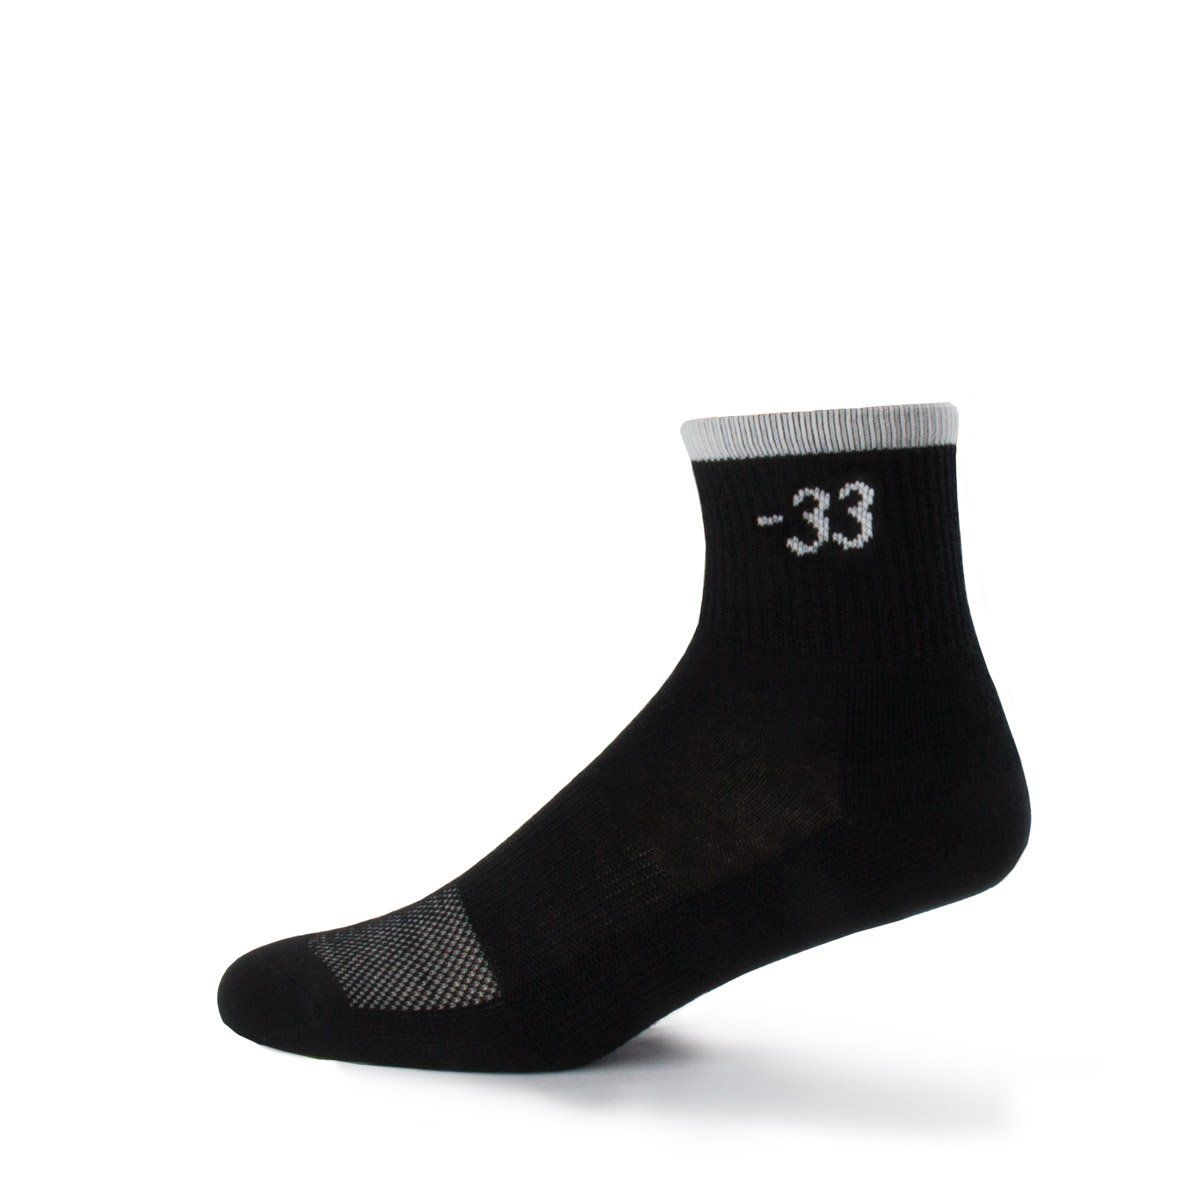 Minus33 Merino Wool Low Rise Trail Sock MINUJ